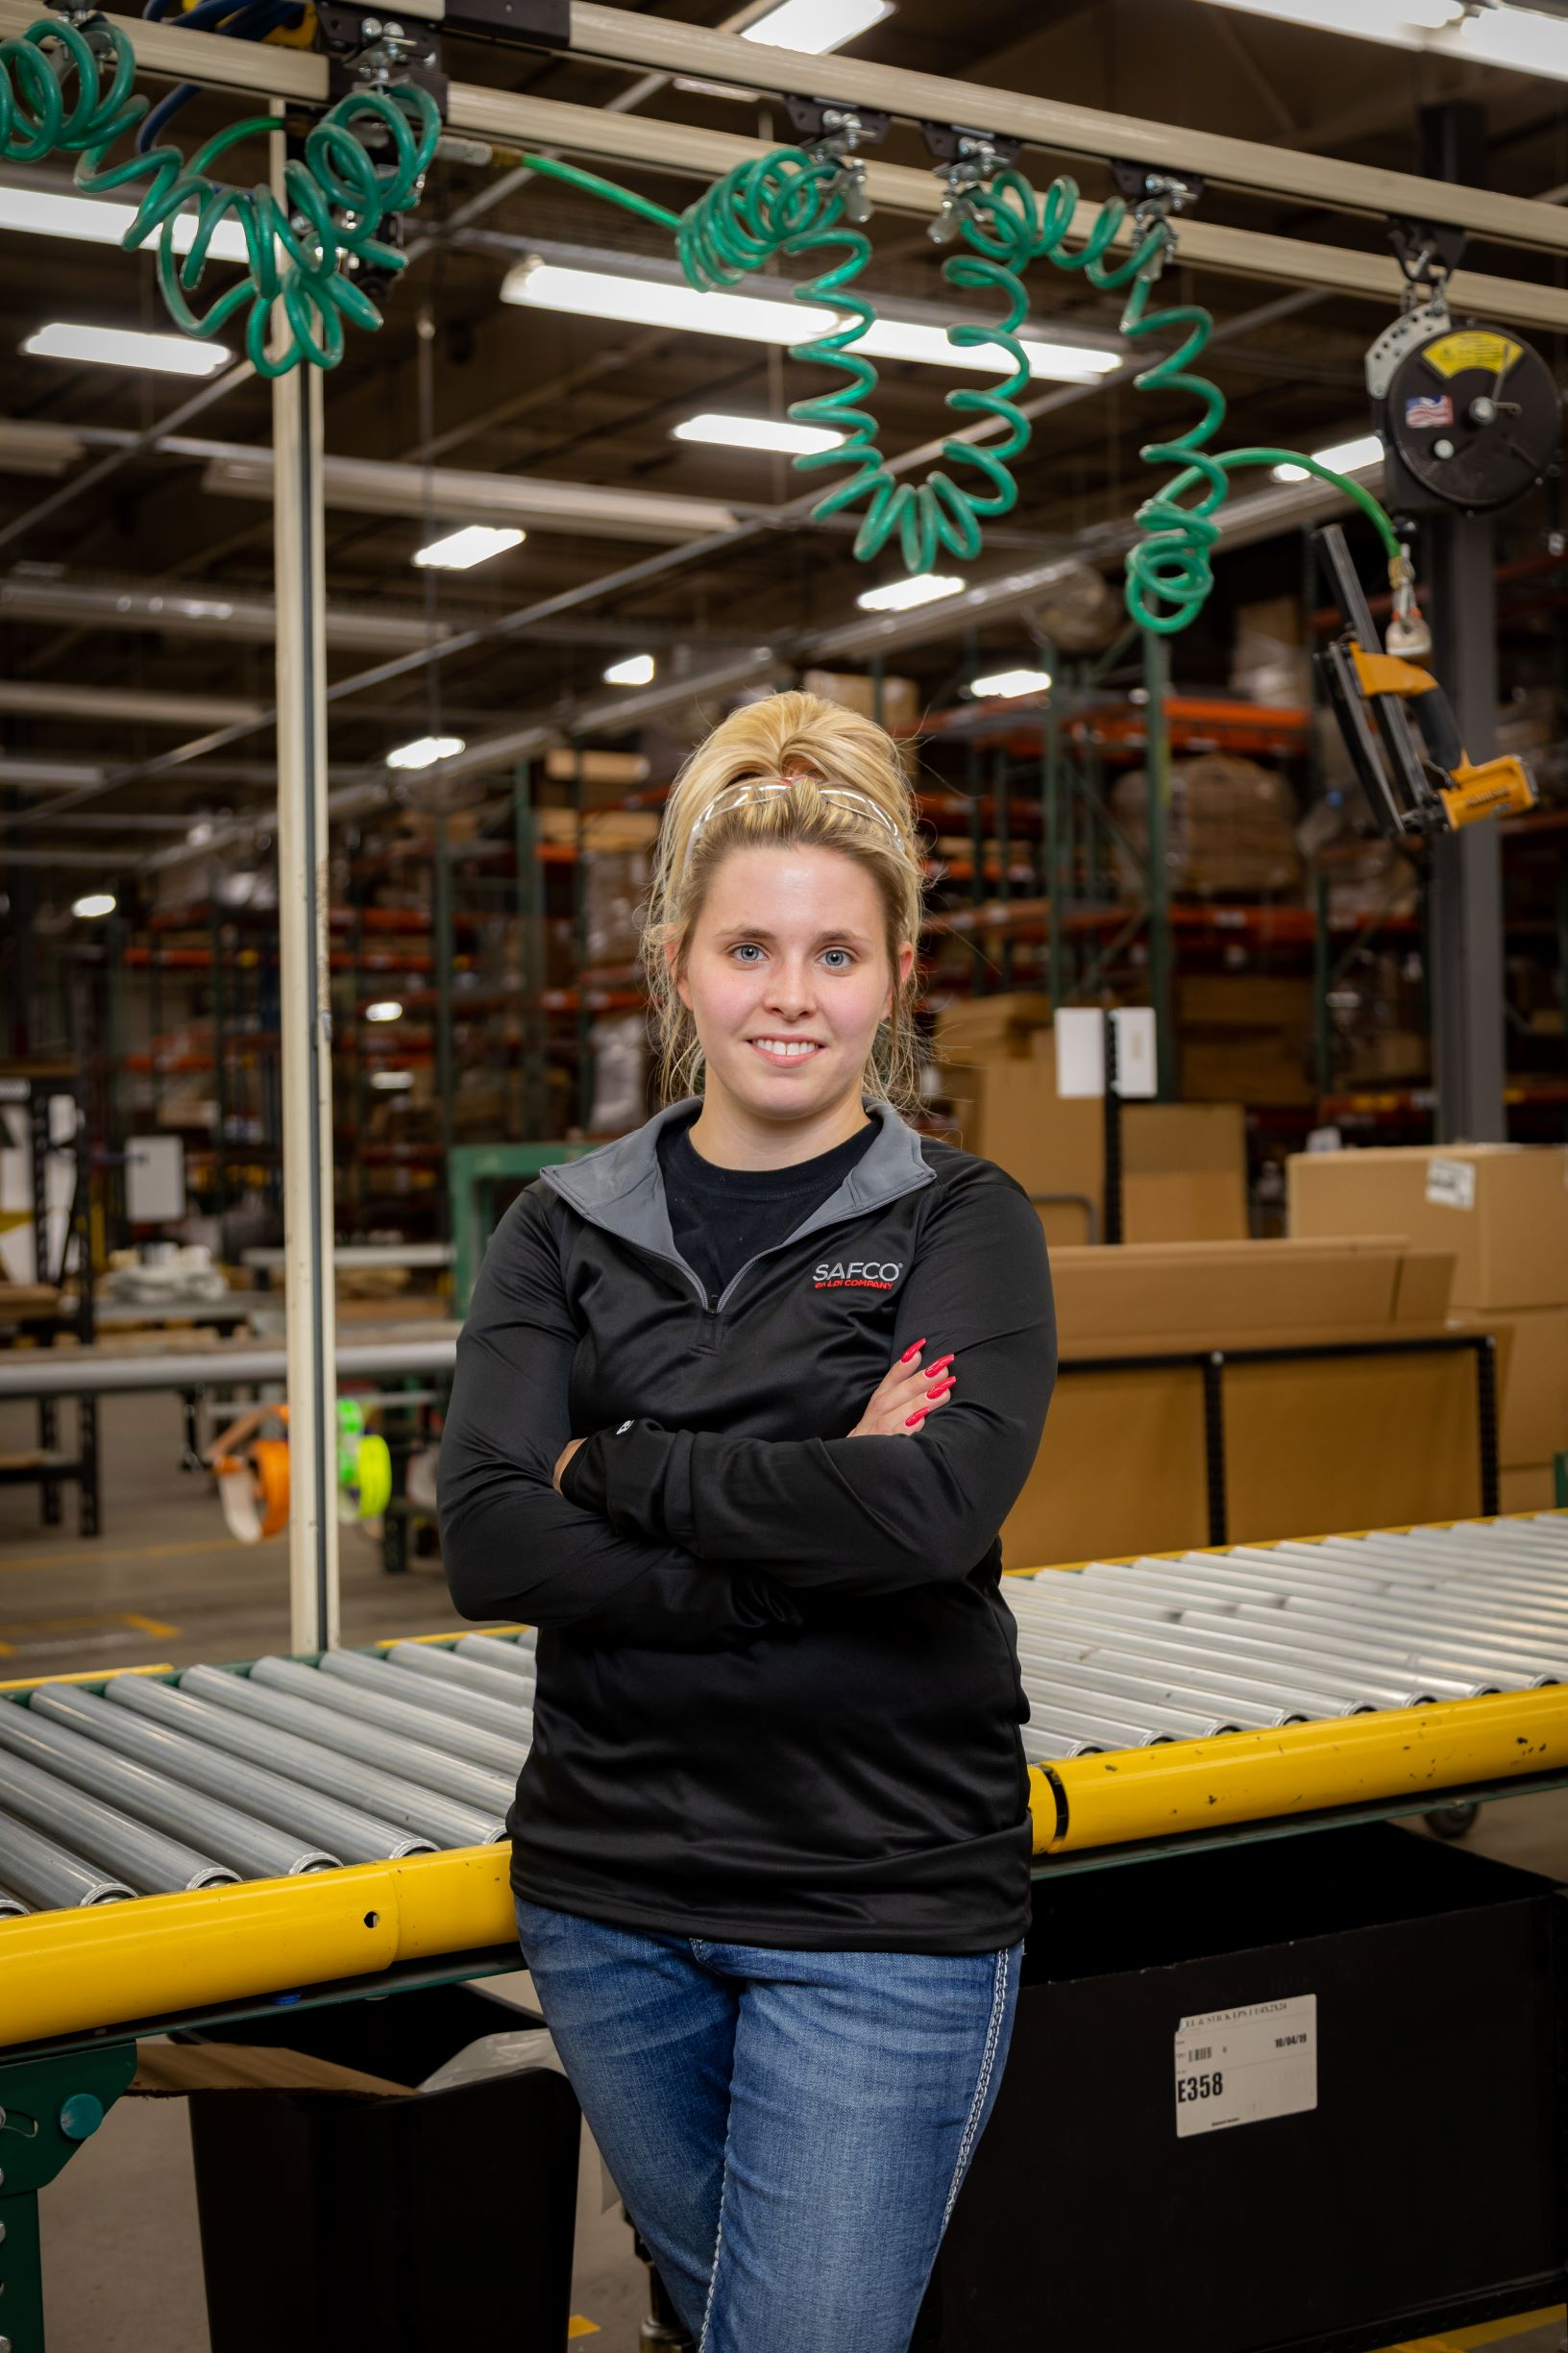 Tiffany Plagman in the Safco Products facility